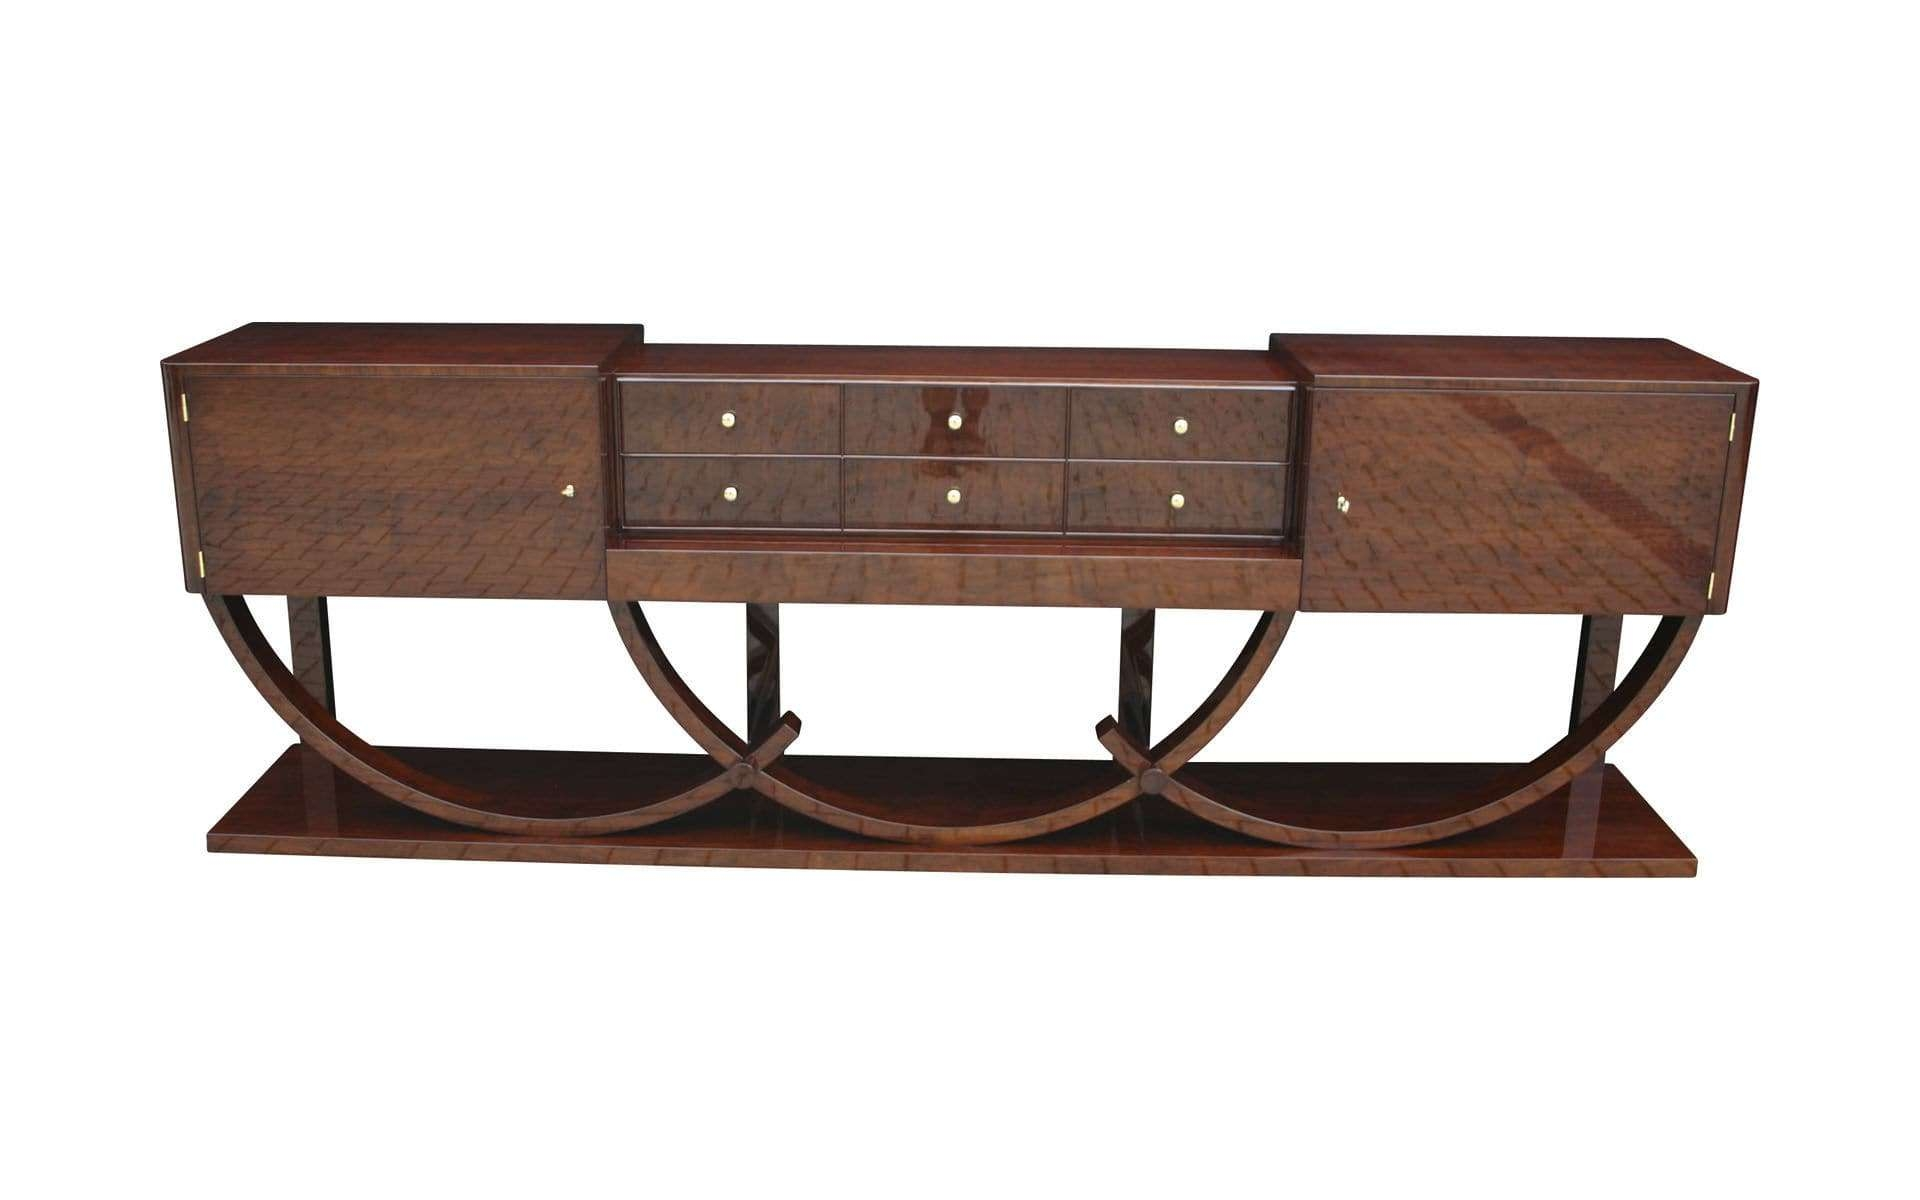 Art Deco Sideboard / Macassar Ebony / Glossy Lacquered Wood Throughout Art Deco Sideboards (View 6 of 20)